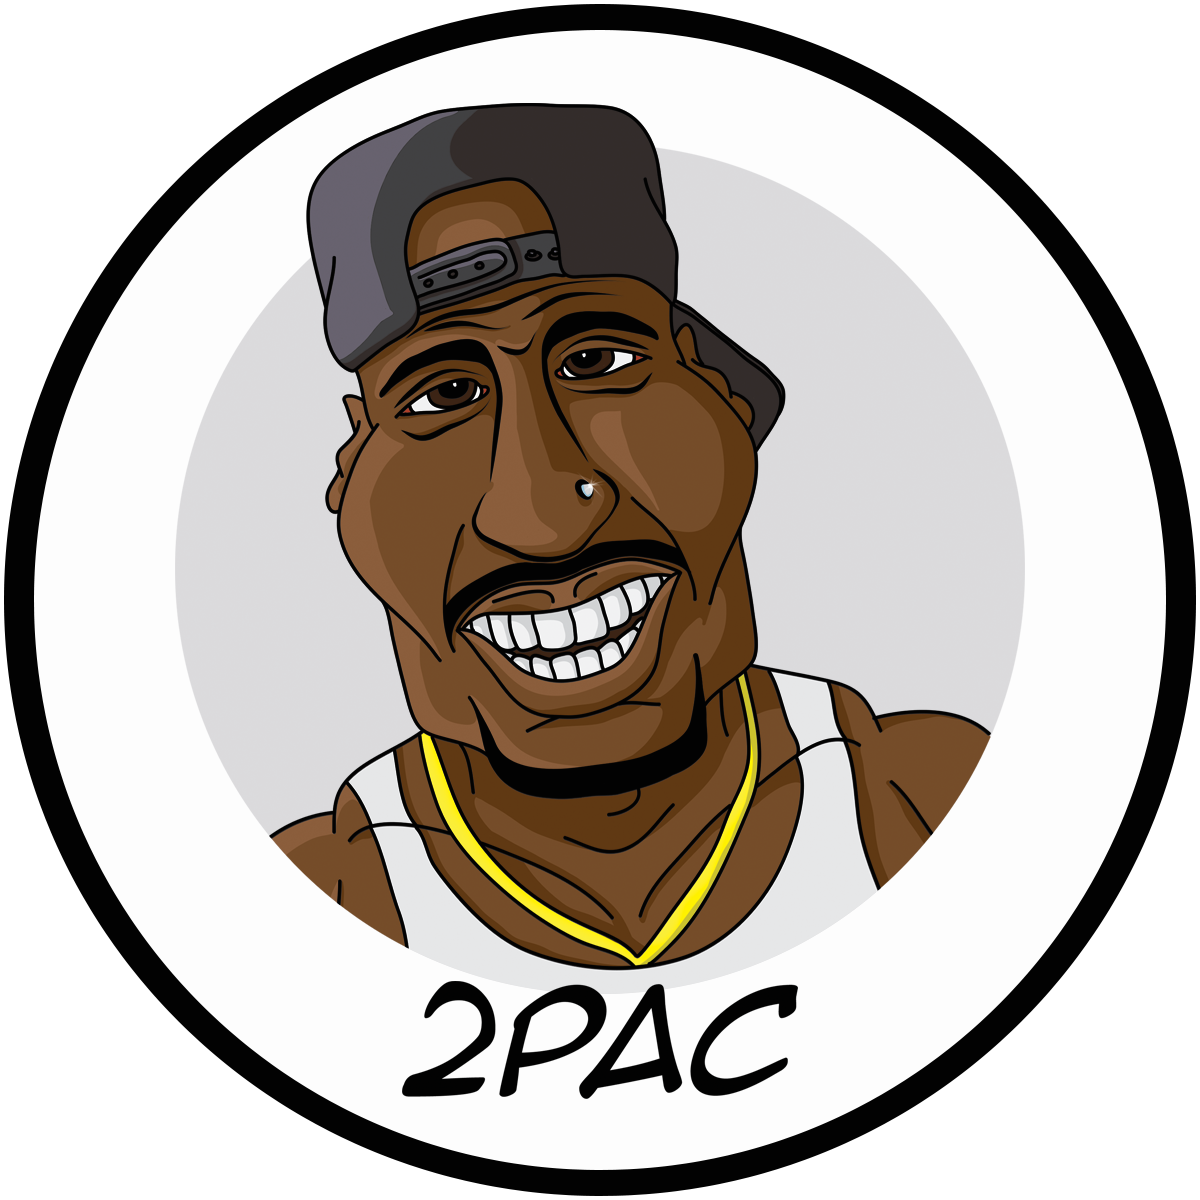 Rapper vector snoop. Pac illustration caricature